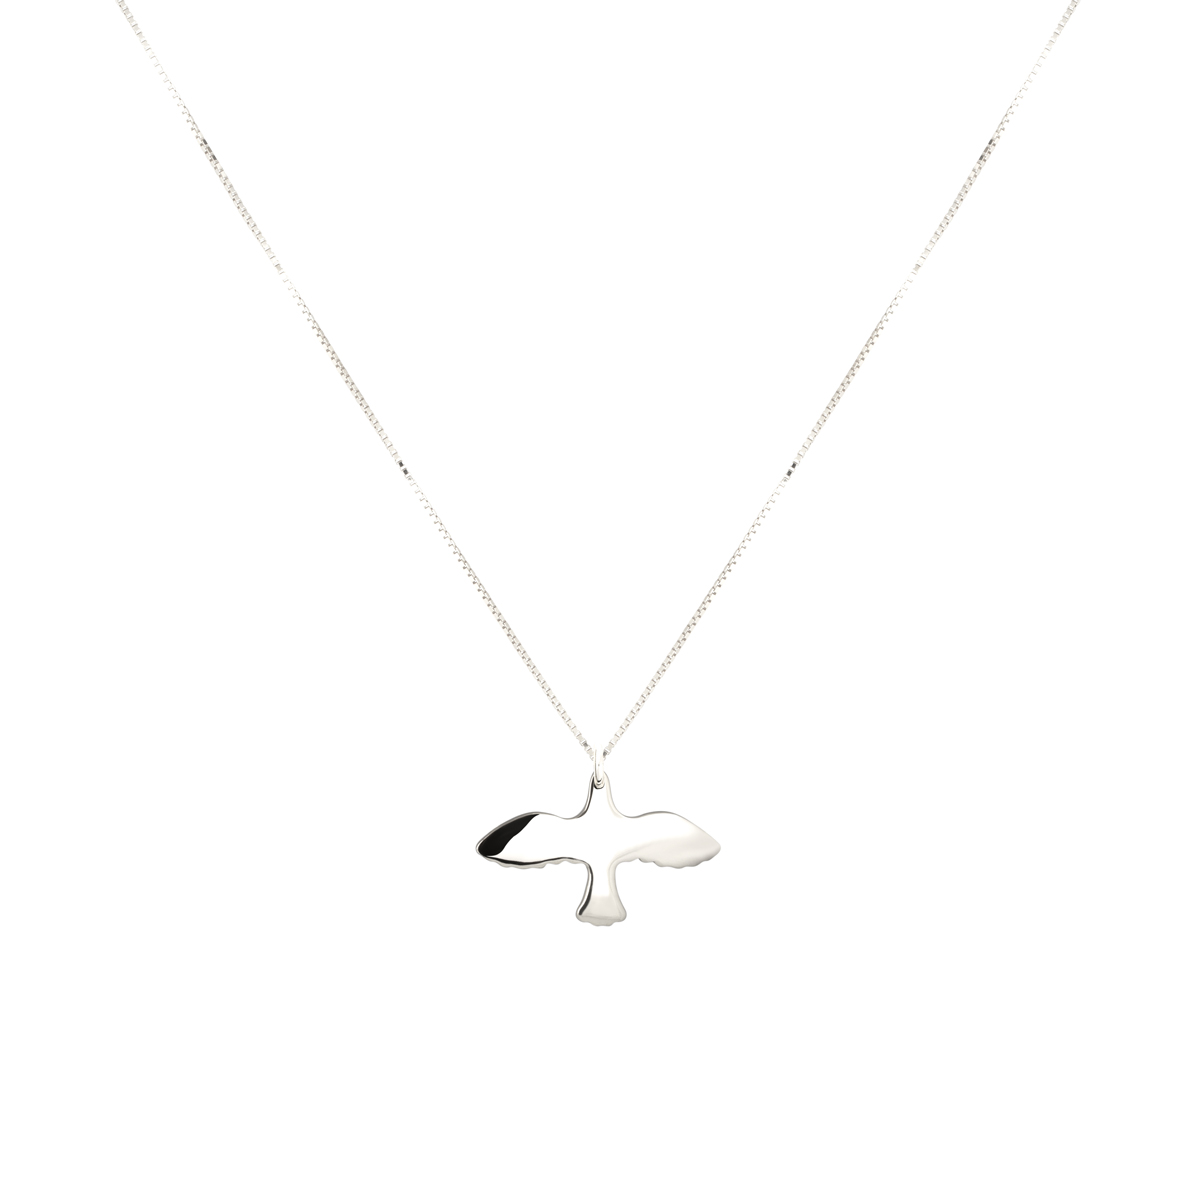 SILVER SMALL DOVE NECKLACE i gruppen HALSBAND hos EMMA ISRAELSSON (neck030)